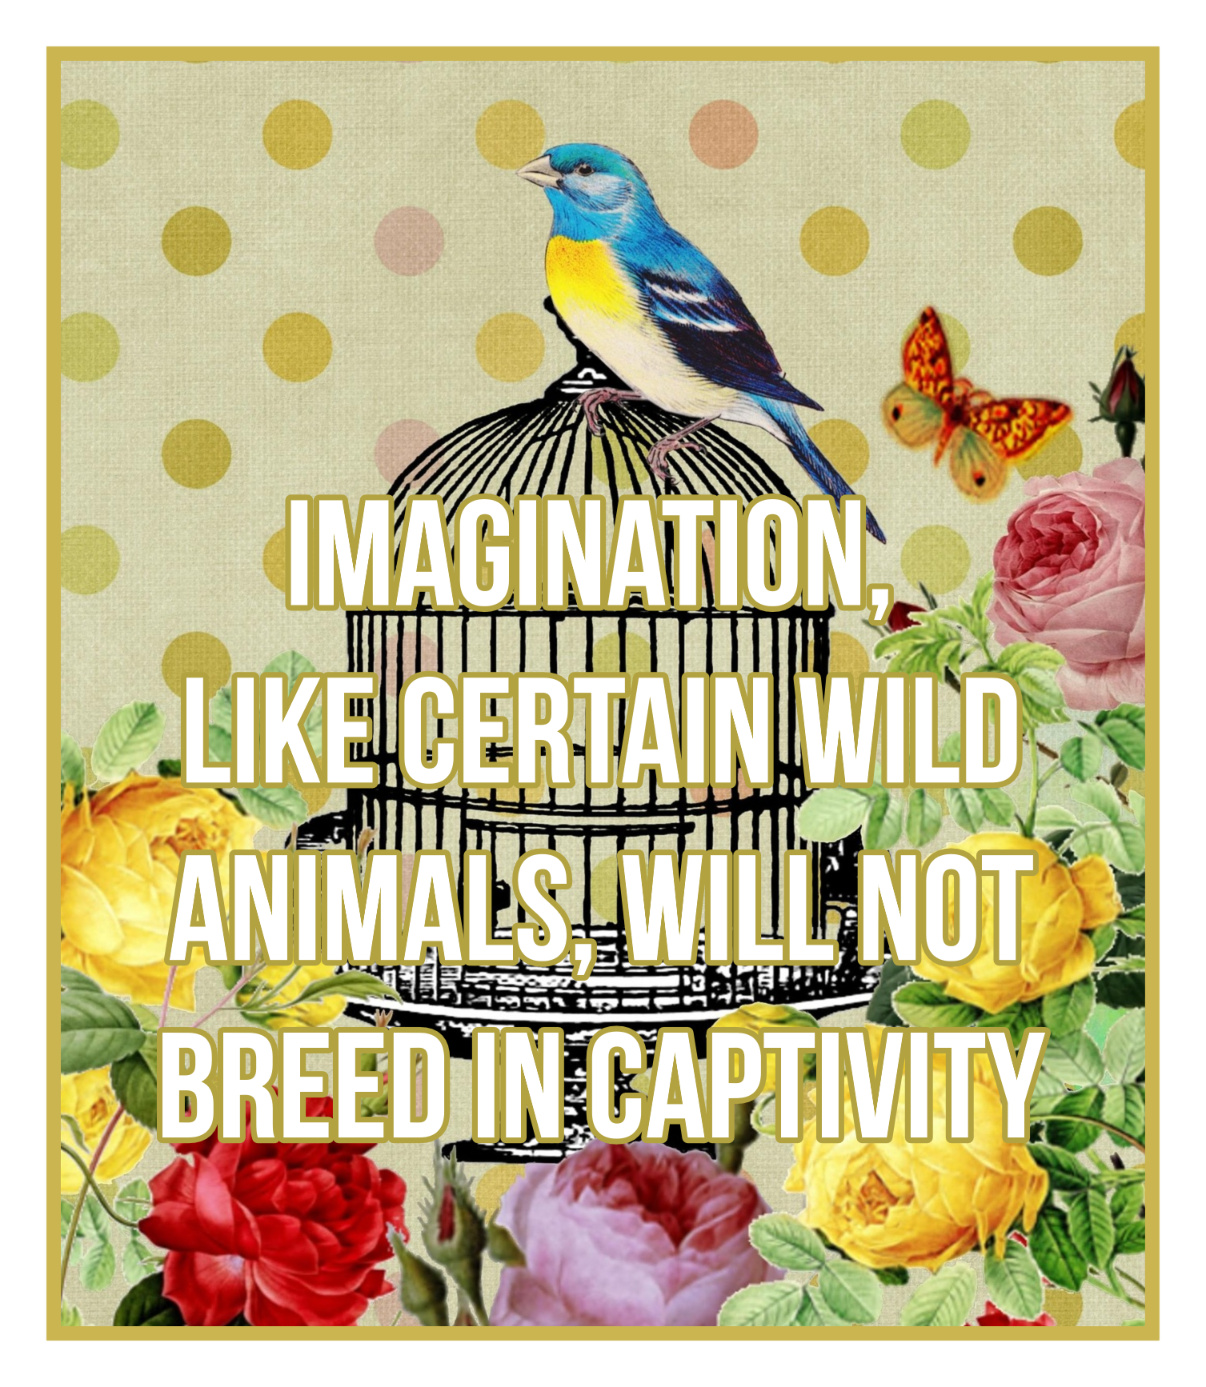 bekitschig blog Imagination like certain wild animals will not breed in captivity George Orwell